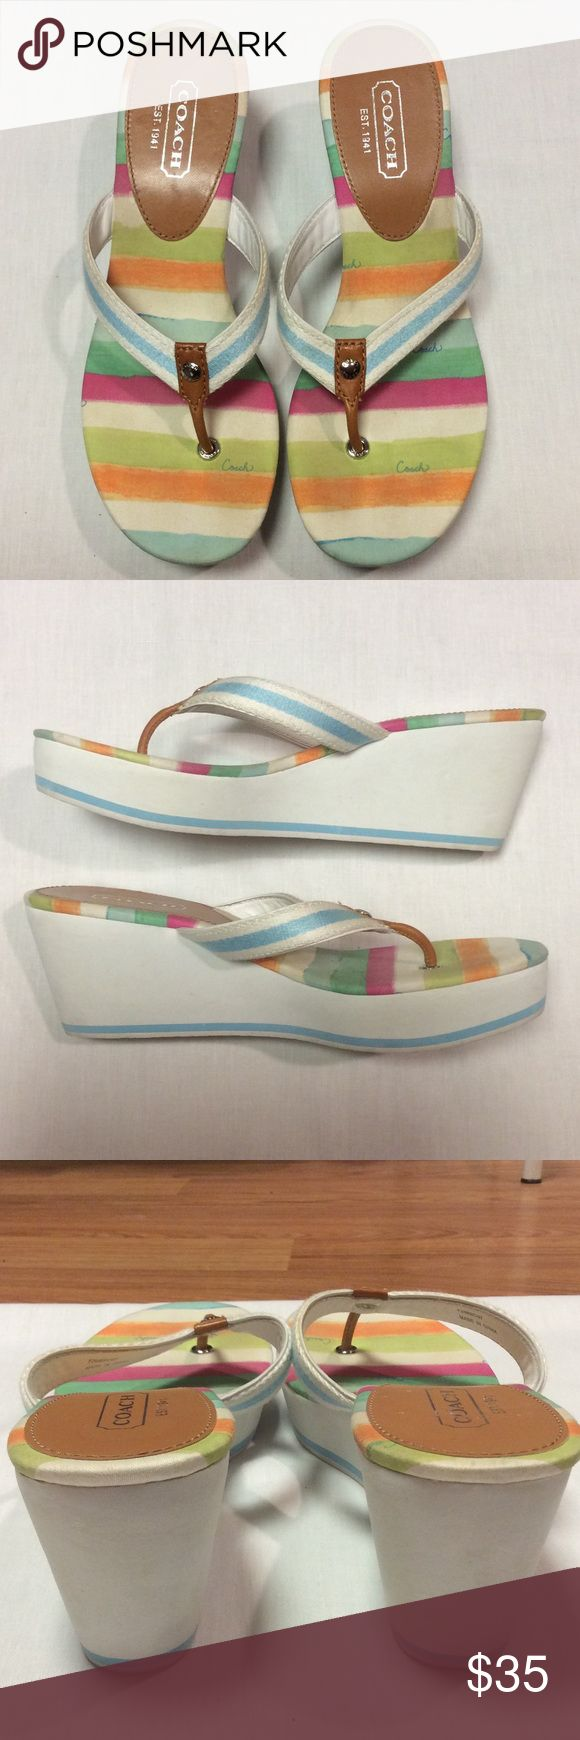 Coach Wedges Sandals Slides Thongs Authentic Coach Wedges -excellent condition. Flip flop style. Pastel striped fabric footbed. Heel/sole is made of a foam type rubber material. Please enlarge pics for any imperfections - nothing noticeable when worn but must mention. Bundle and save! Coach Shoes Wedges